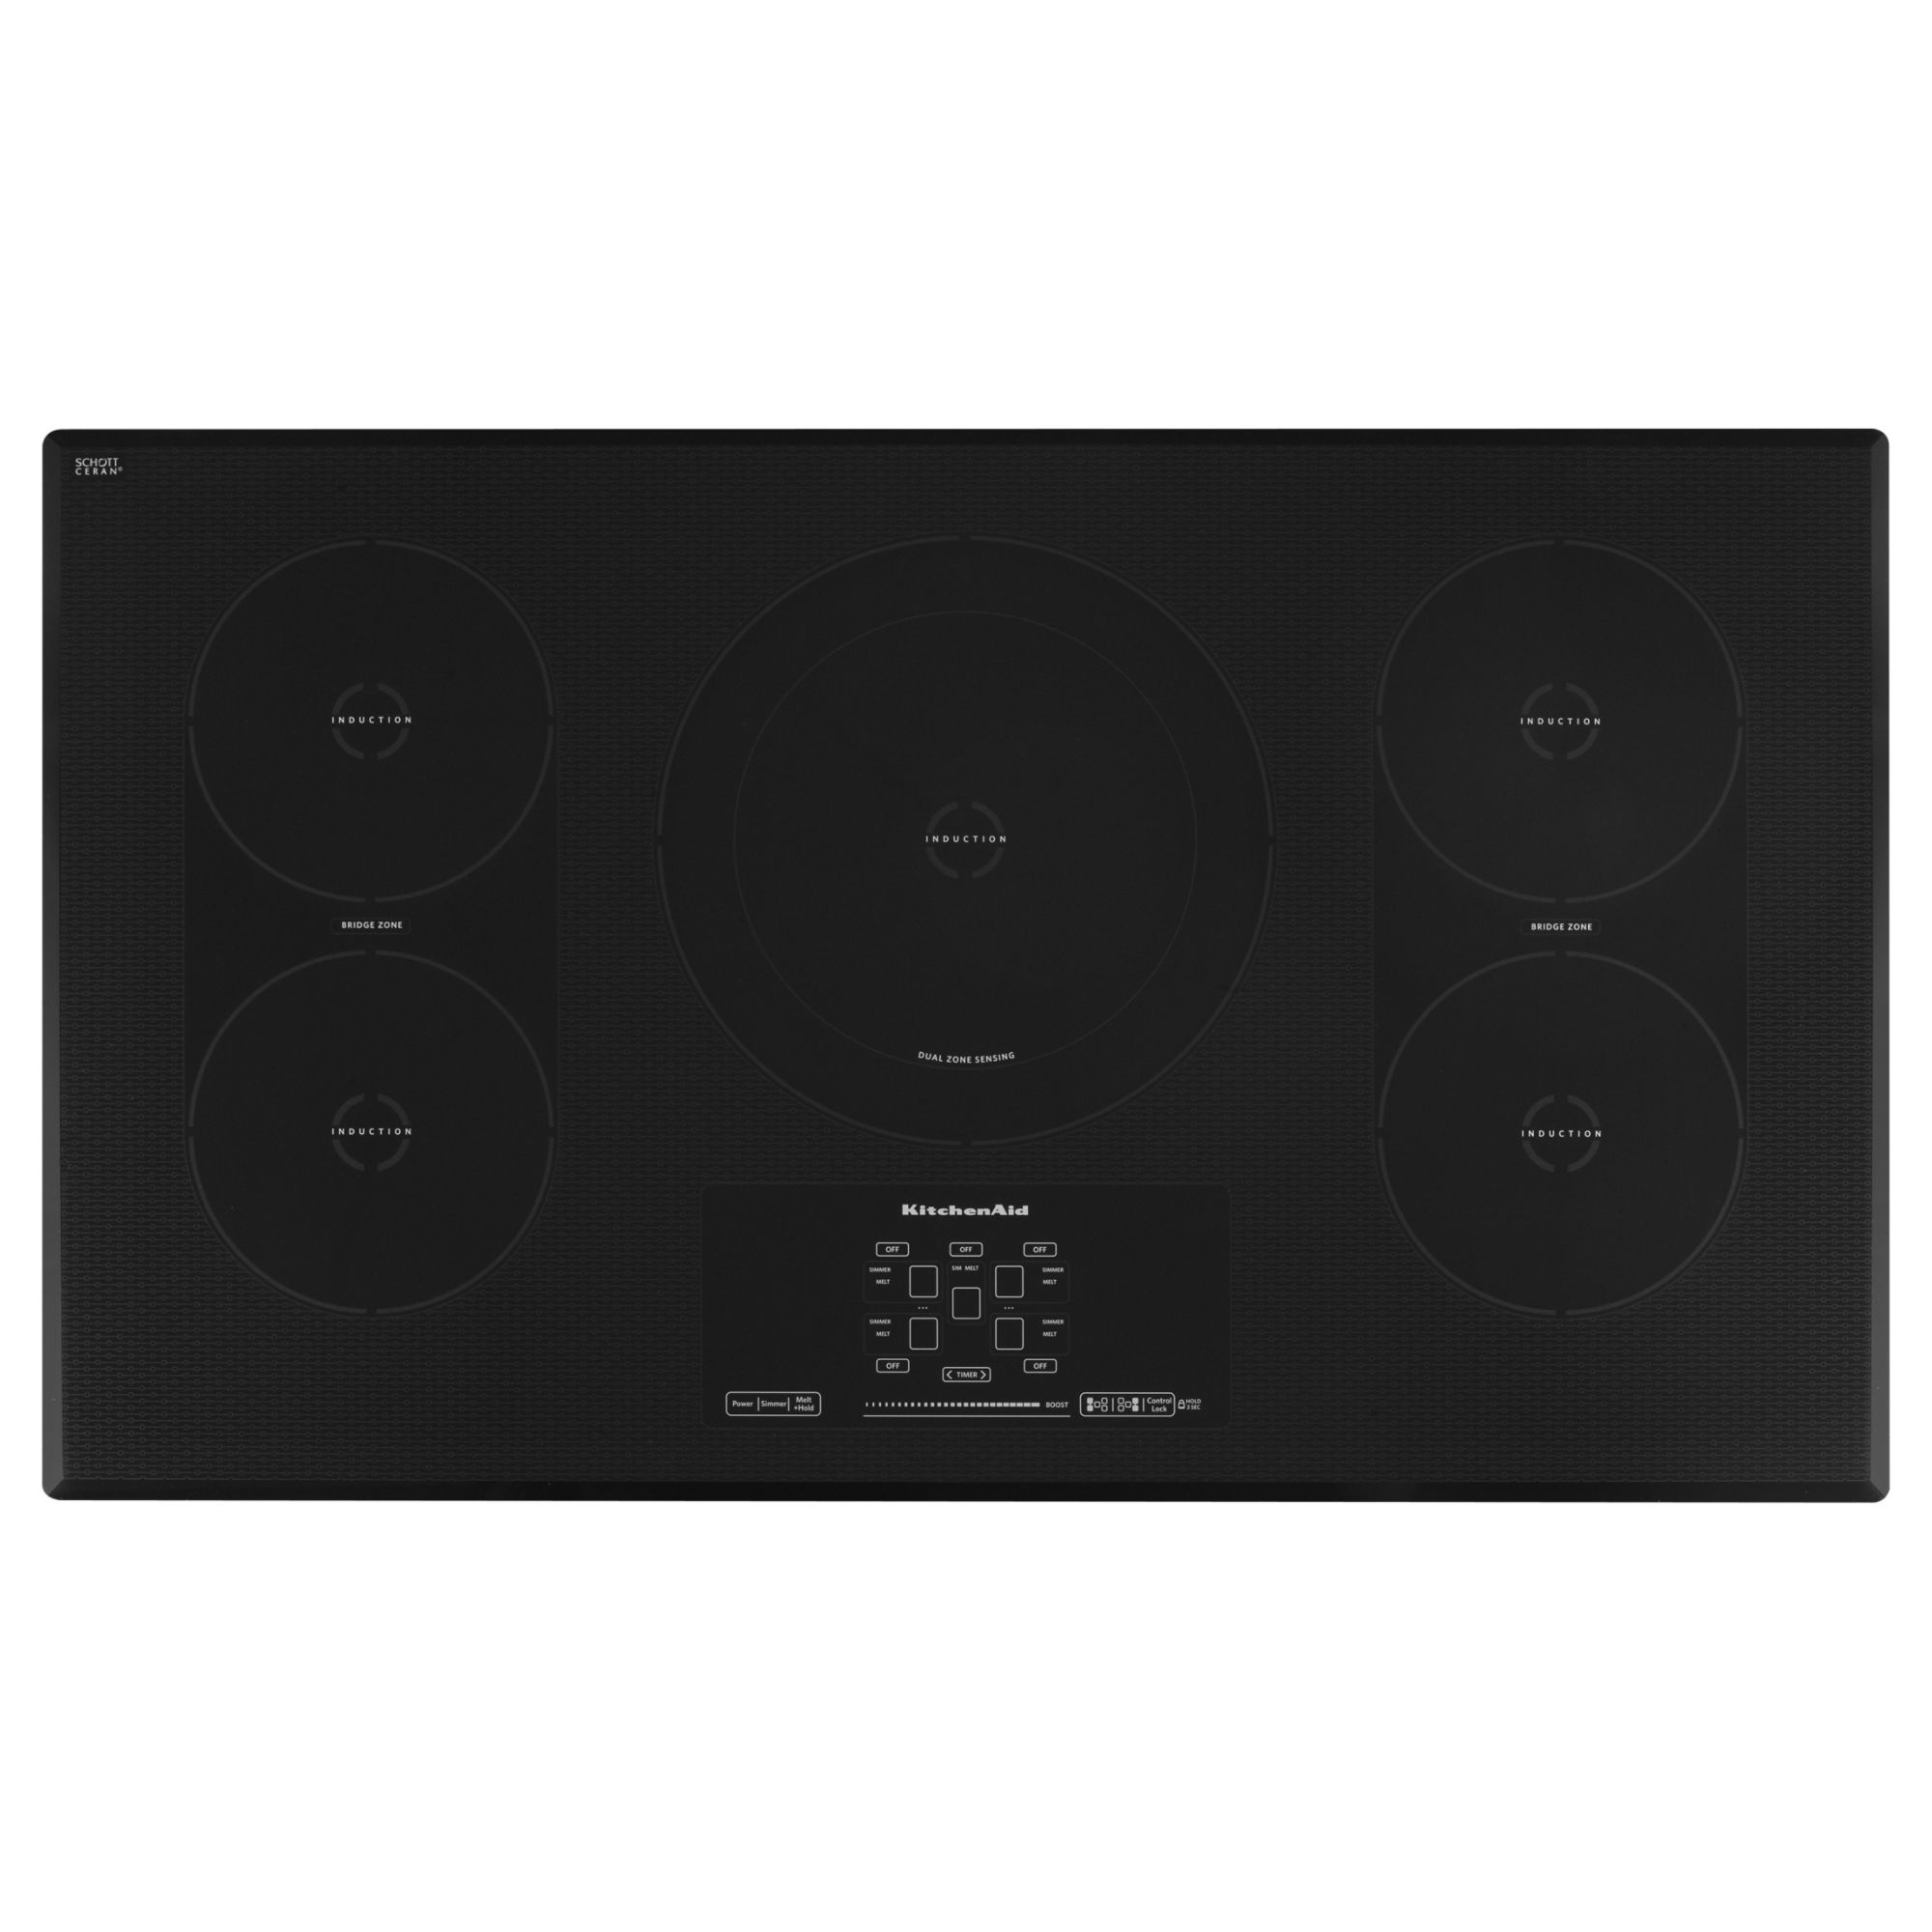 KitchenAid KICU569XBL 36 Electric Induction Cooktop